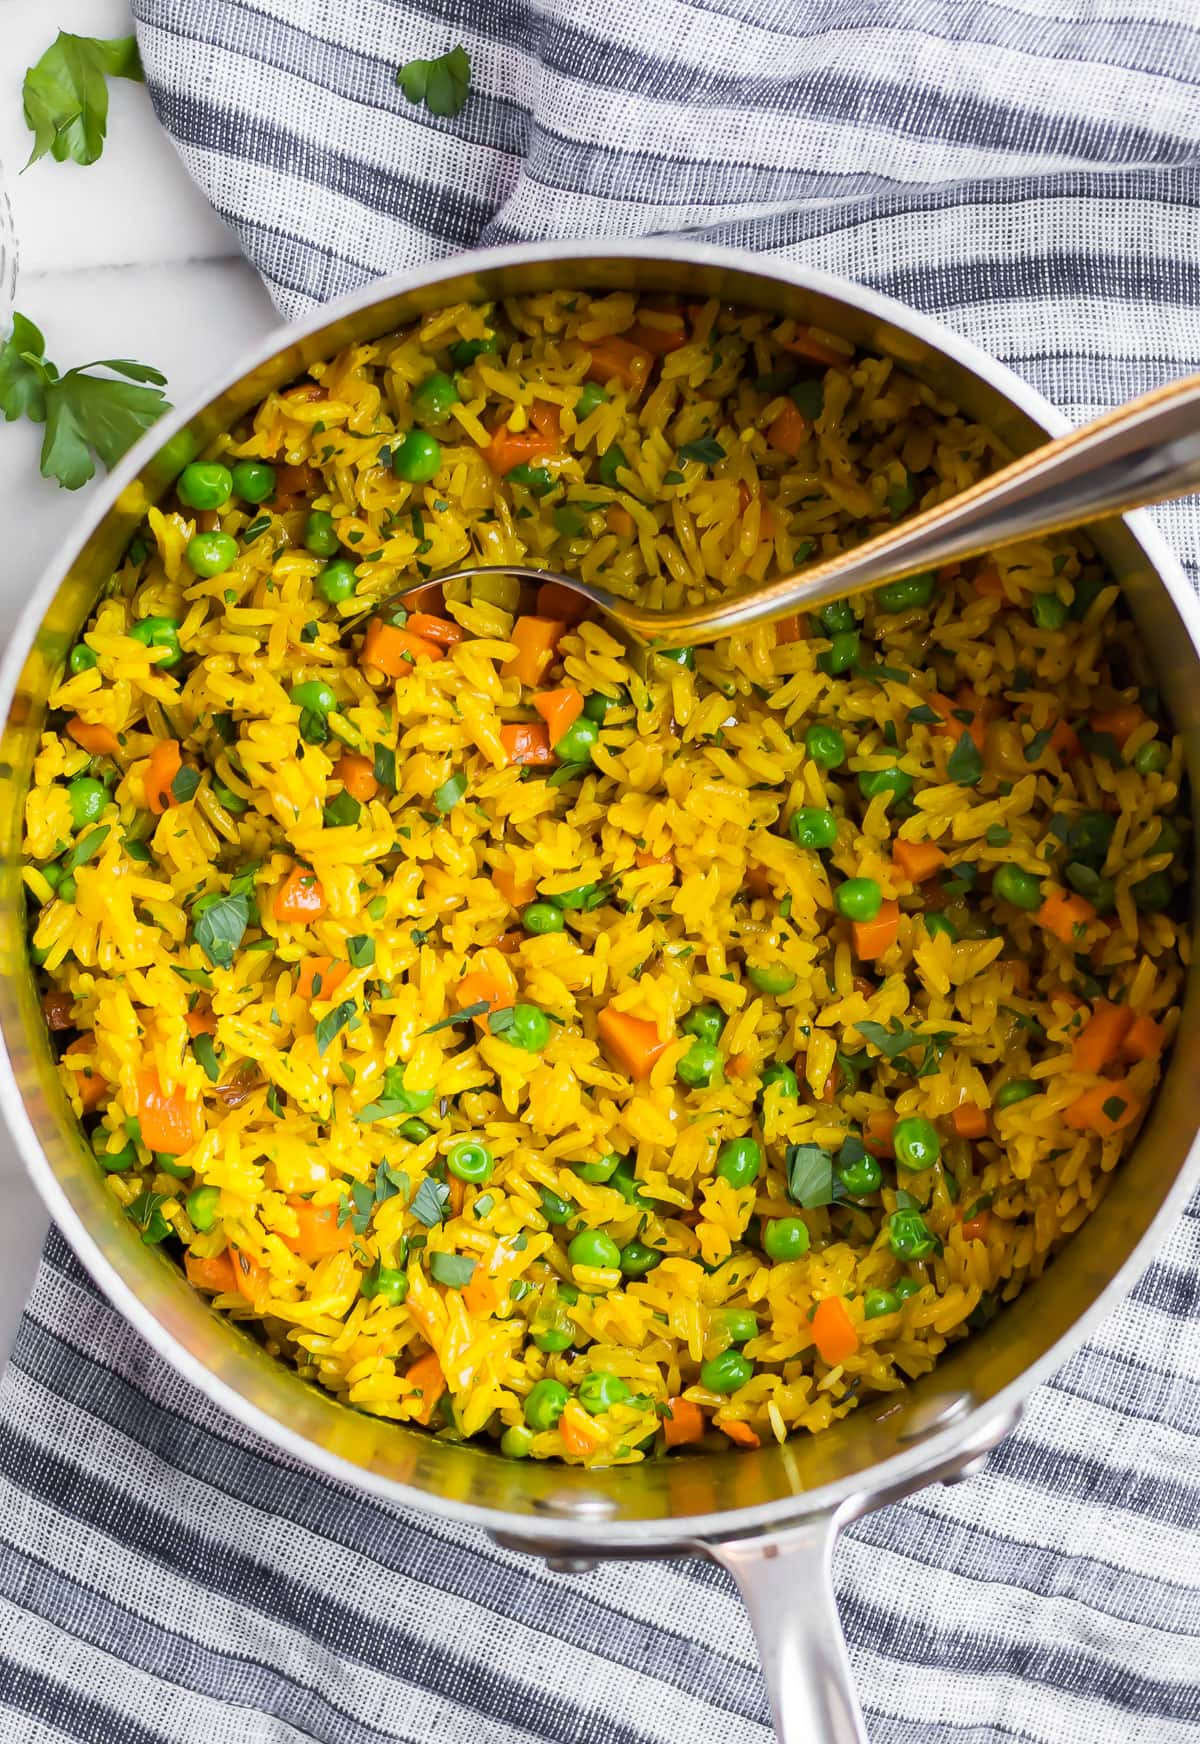 Healthy turmeric rice in a pot